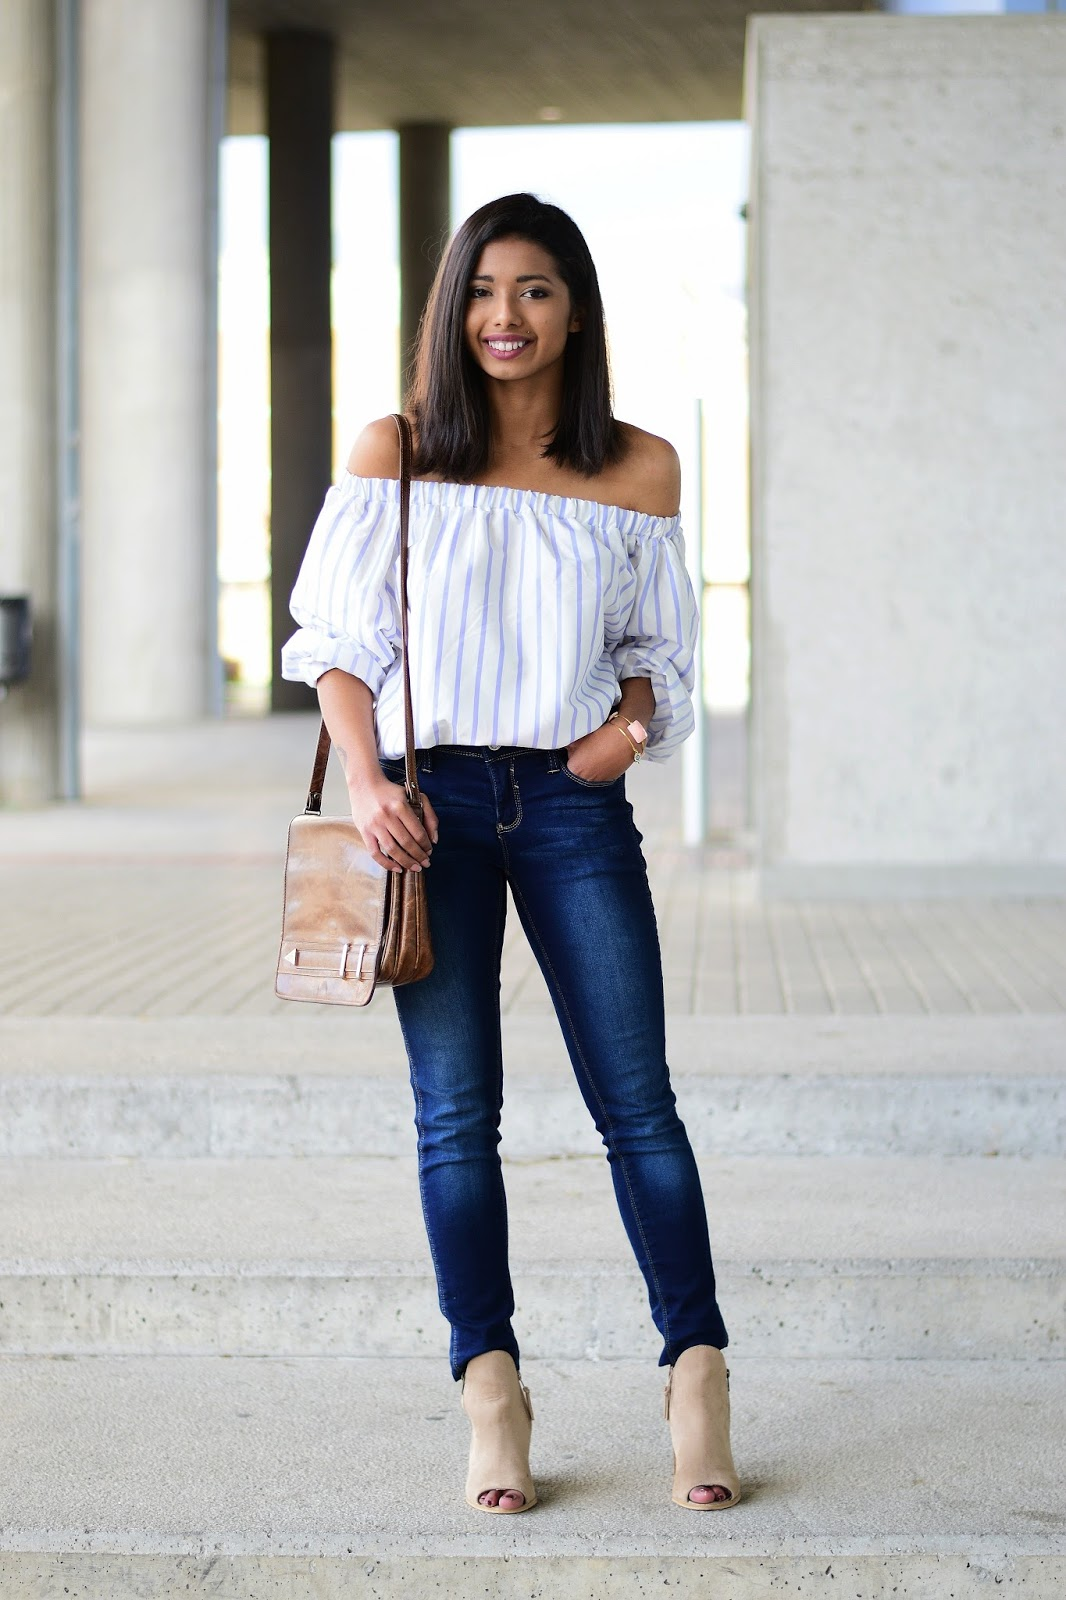 off-shoulder top and jeans outfit